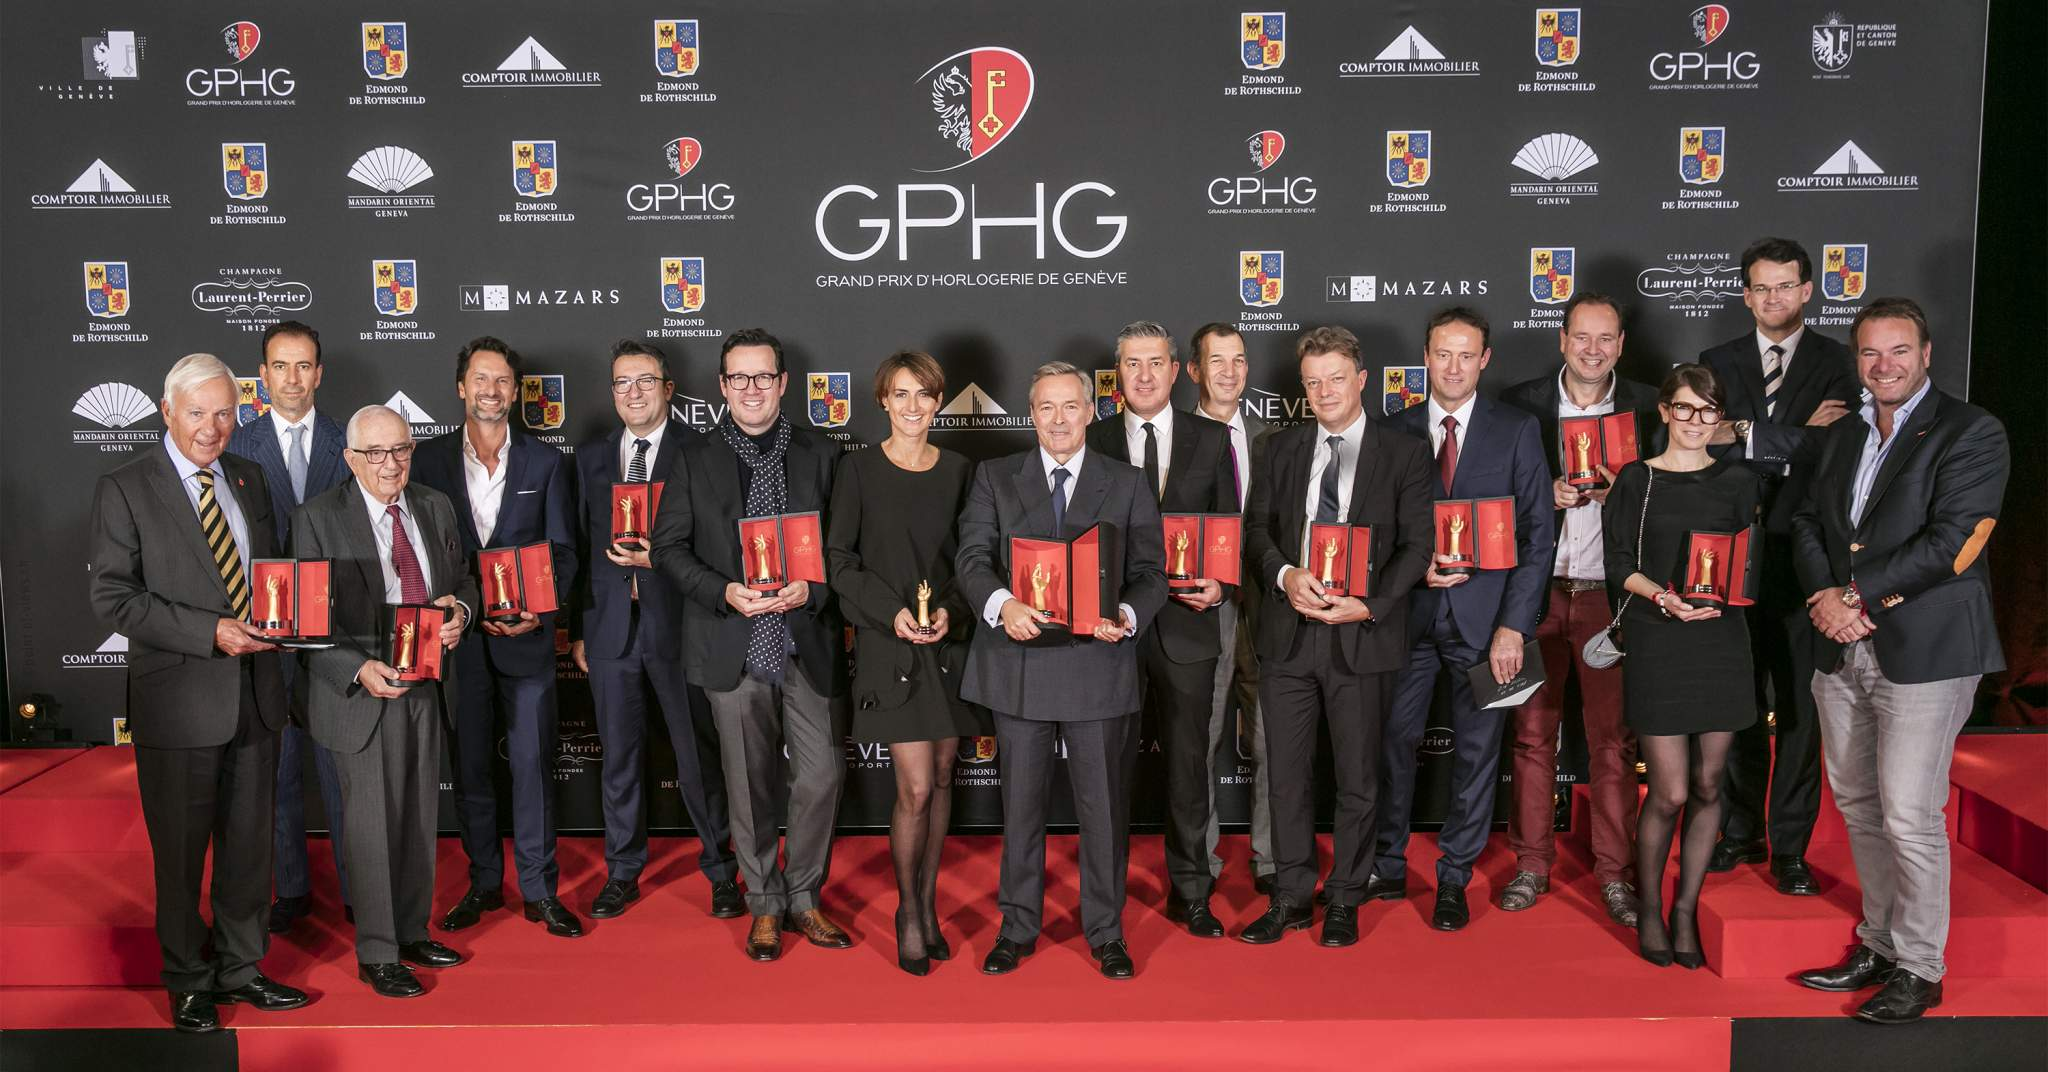 The Prize winners of the Grand Prix d'Horlogerie de Genève 2016 : David Newman (President of The George Daniels Educational Trust), Mario Peserico (CEO of Eberhard & Co), Jack Heuer (Honorary Chairman of TAG Heuer), Maximilian Büsser (Owner & Creative Director of MB&F), Xavier de Roquemaurel (CEO of Czapek Genève), François Bennahmias (CEO of Audemars Piguet), Delphine Favier (Managing Director of Montblanc Suisse), Karl-Friedrich Scheufele  (President of Chronométrie Ferdinand Berthoud), Antonio Calce (CEO of Girard-Perregaux), Philippe Léopold-Metzger (CEO of Piaget), Nicolas Beau (International Watch Director of Chanel), Eric Pirson (Director of Tudor), Tim and Bart Grönefeld (Co-founders of Grönefeld), Aurélie Picaud and Sean Gilbertson (Timepieces Director and CEO of Fabergé)